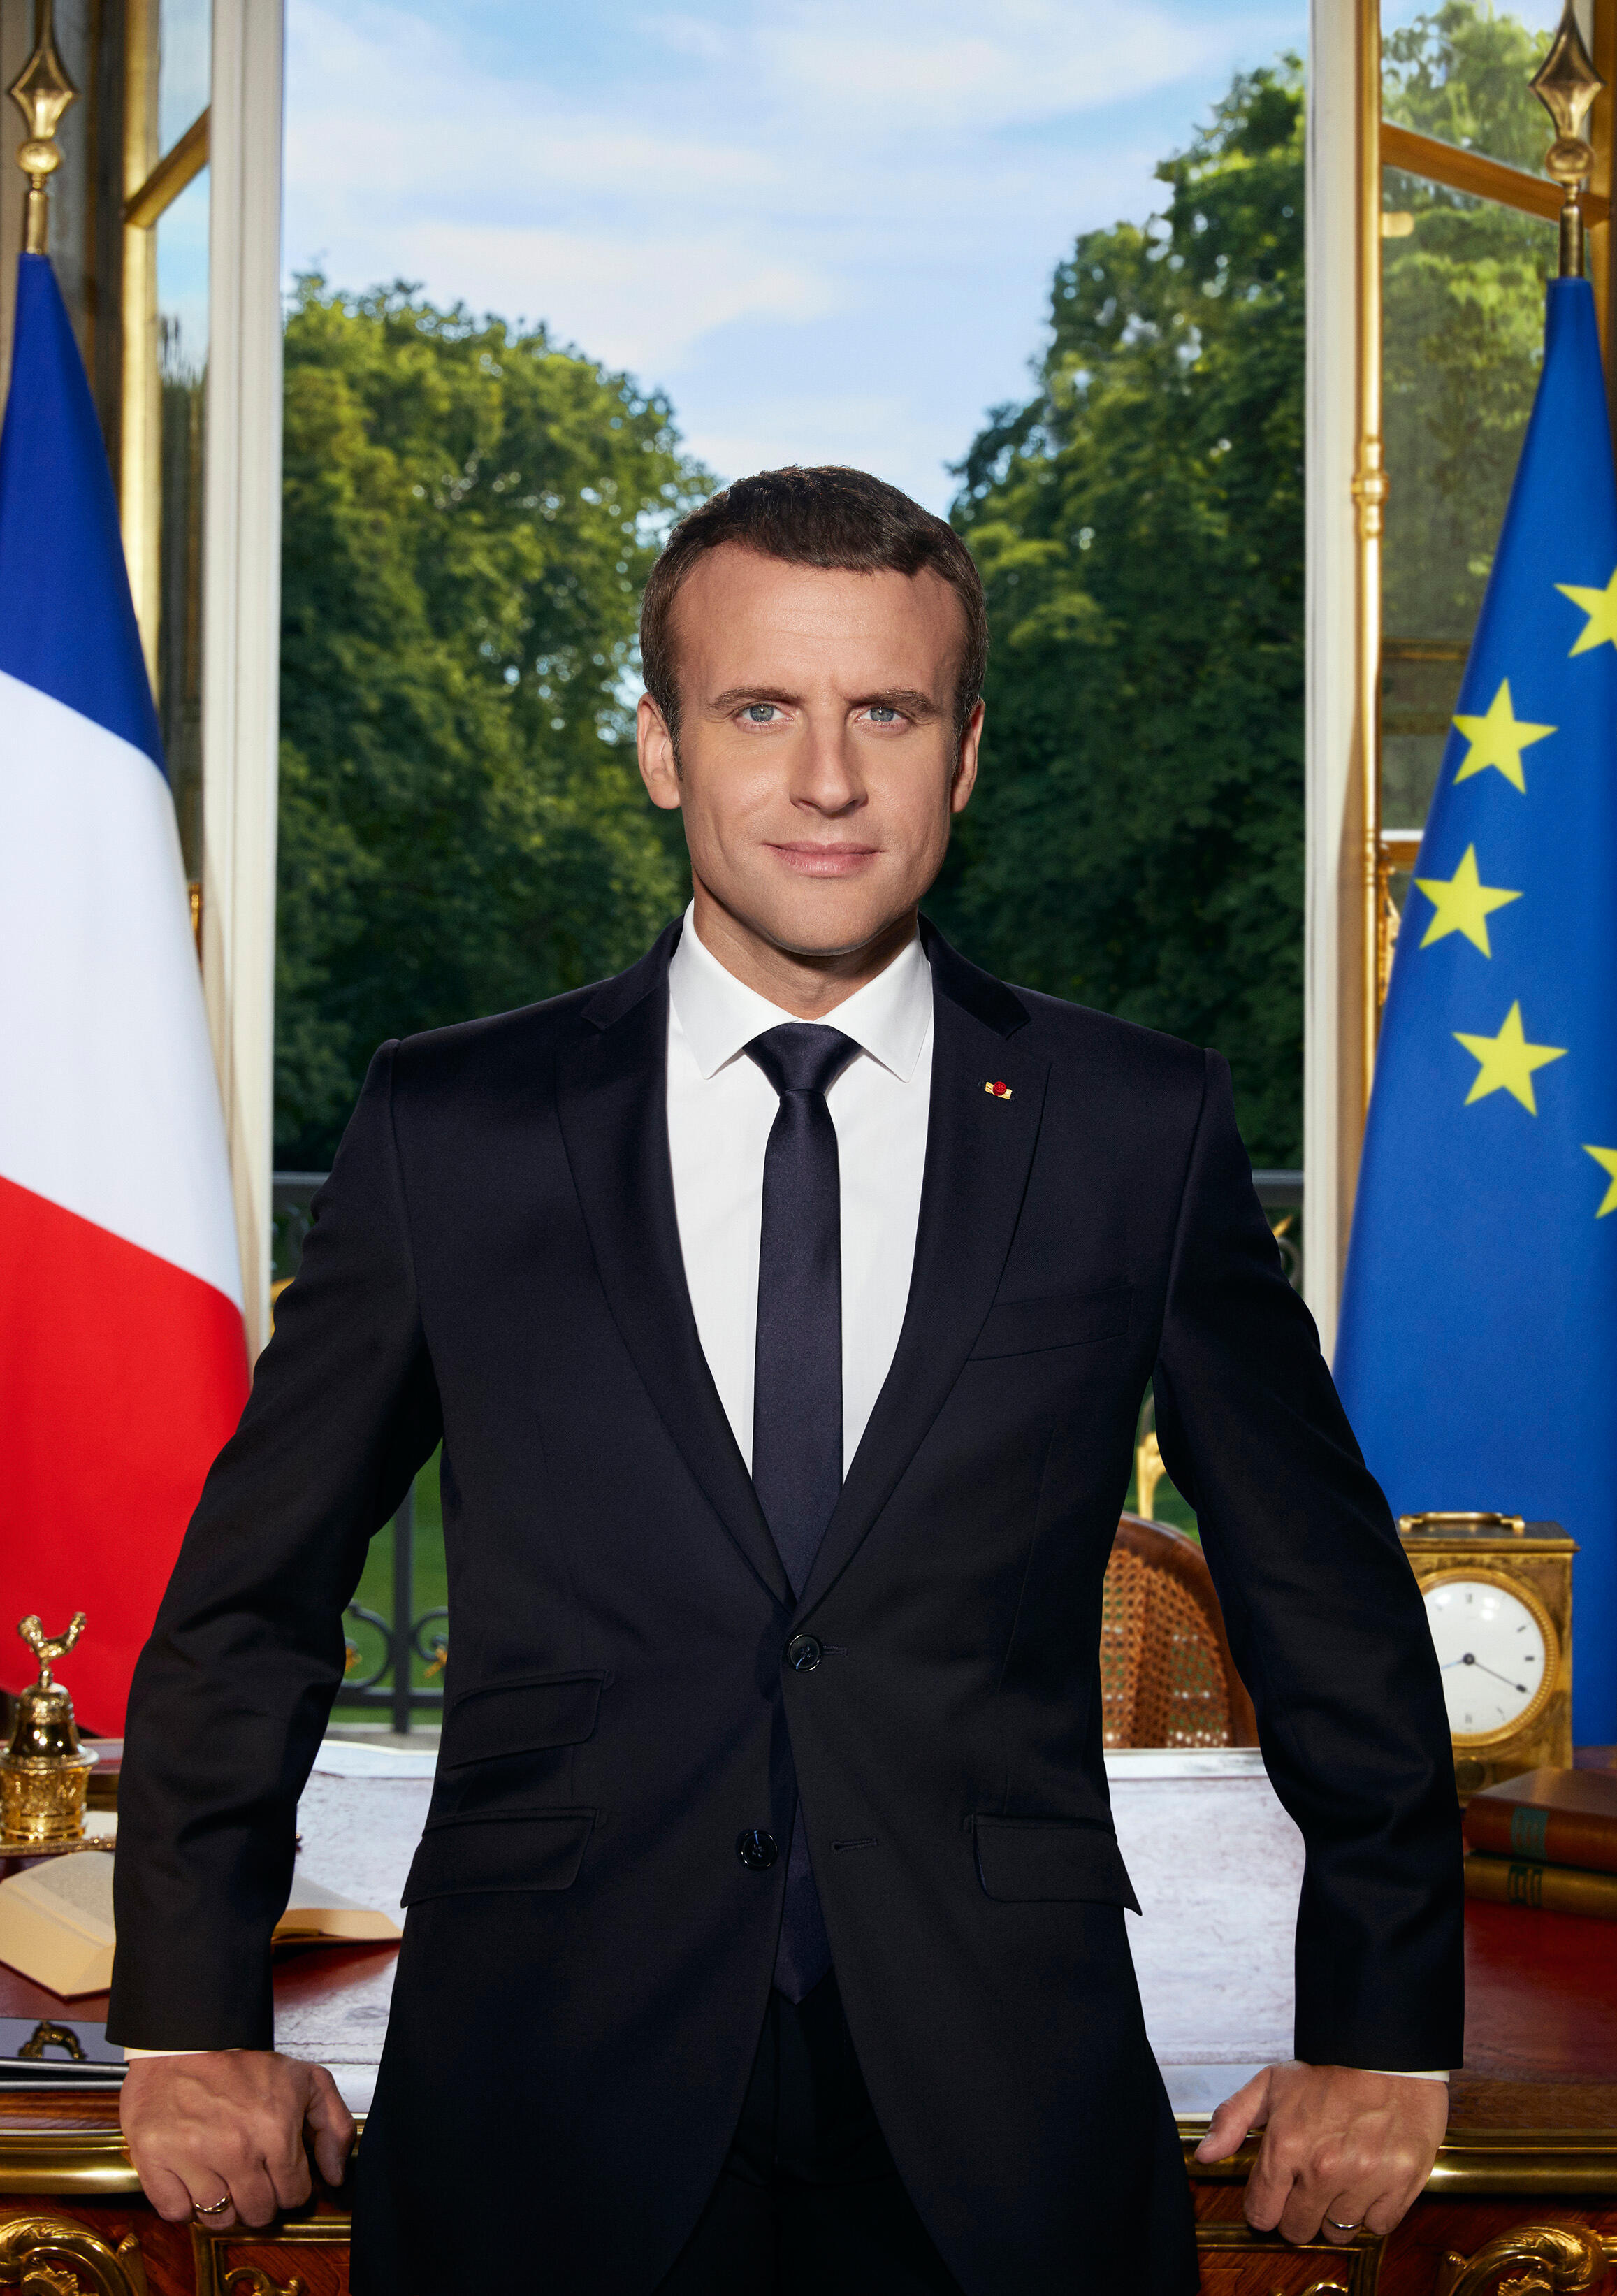 French President Emmanuel Macron's official portrait, released on Thursday